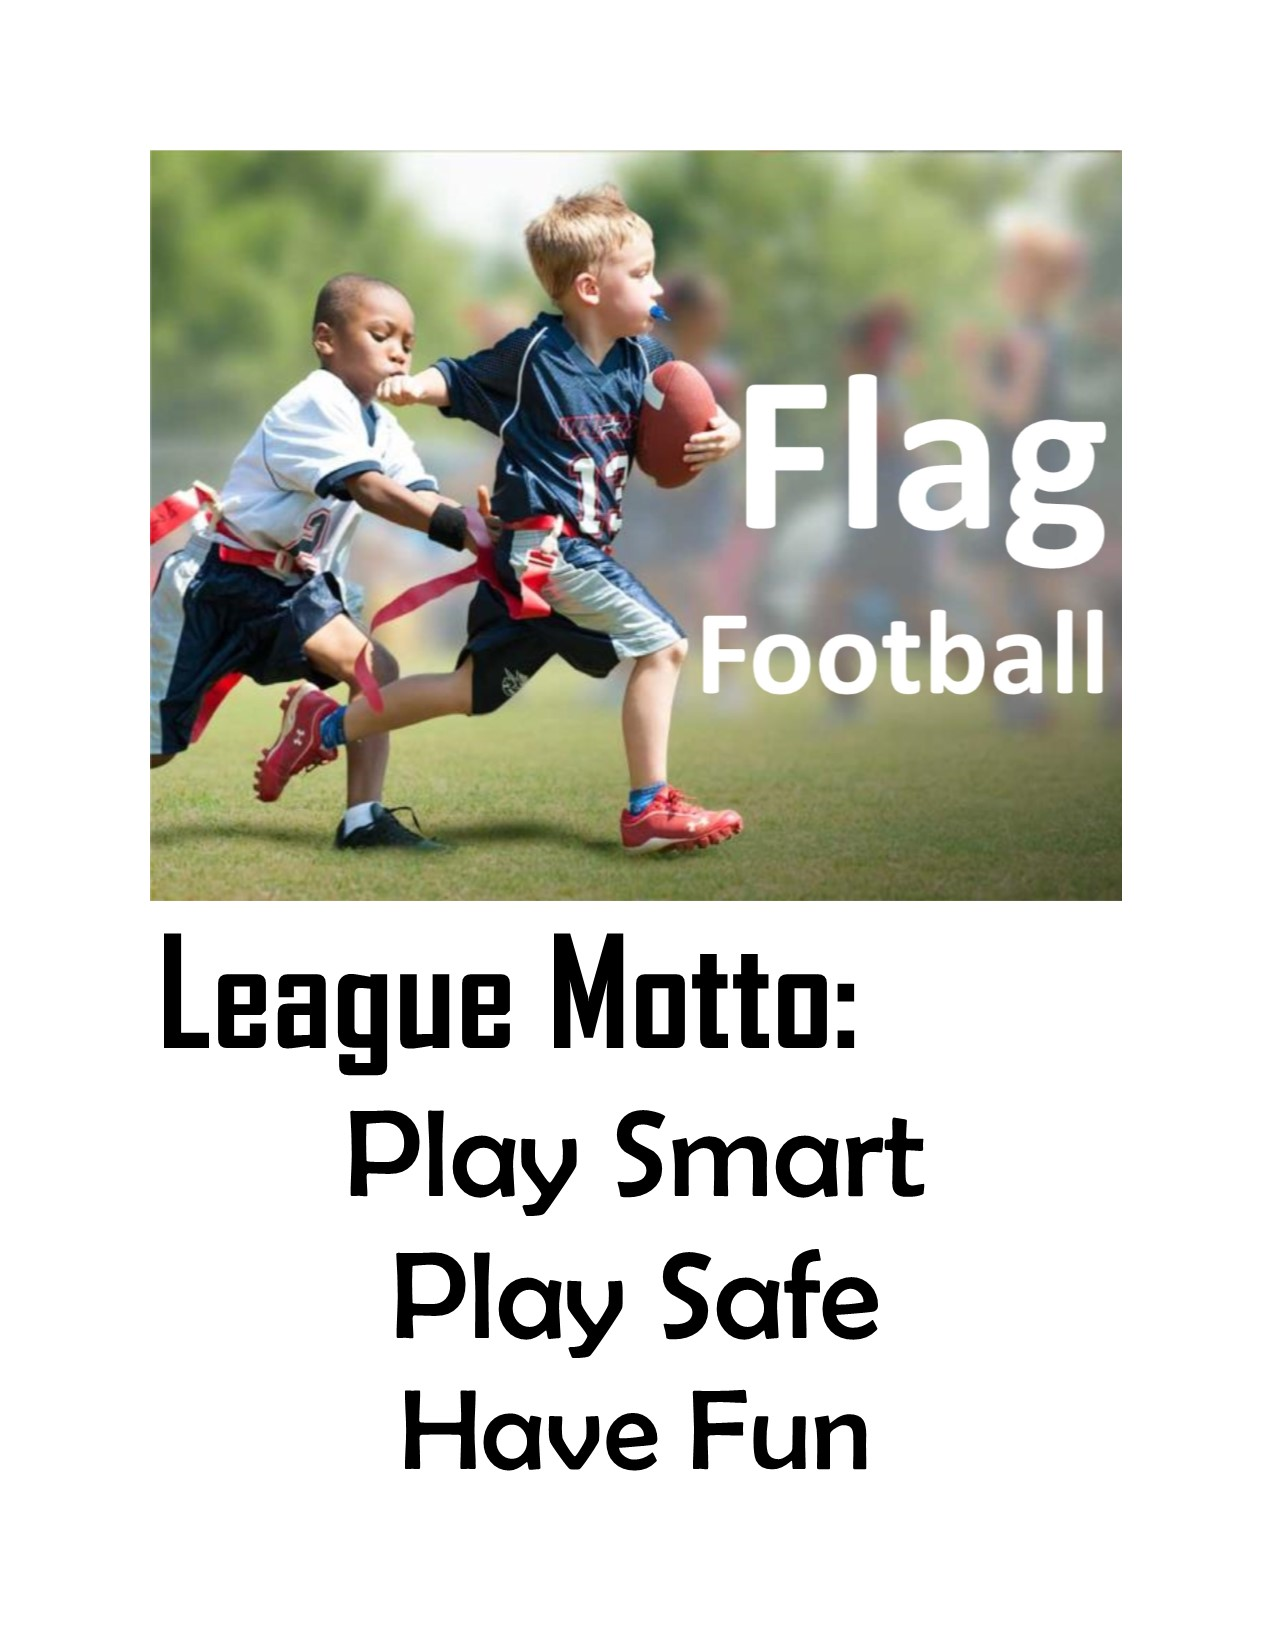 2018 Flag Football League Motto